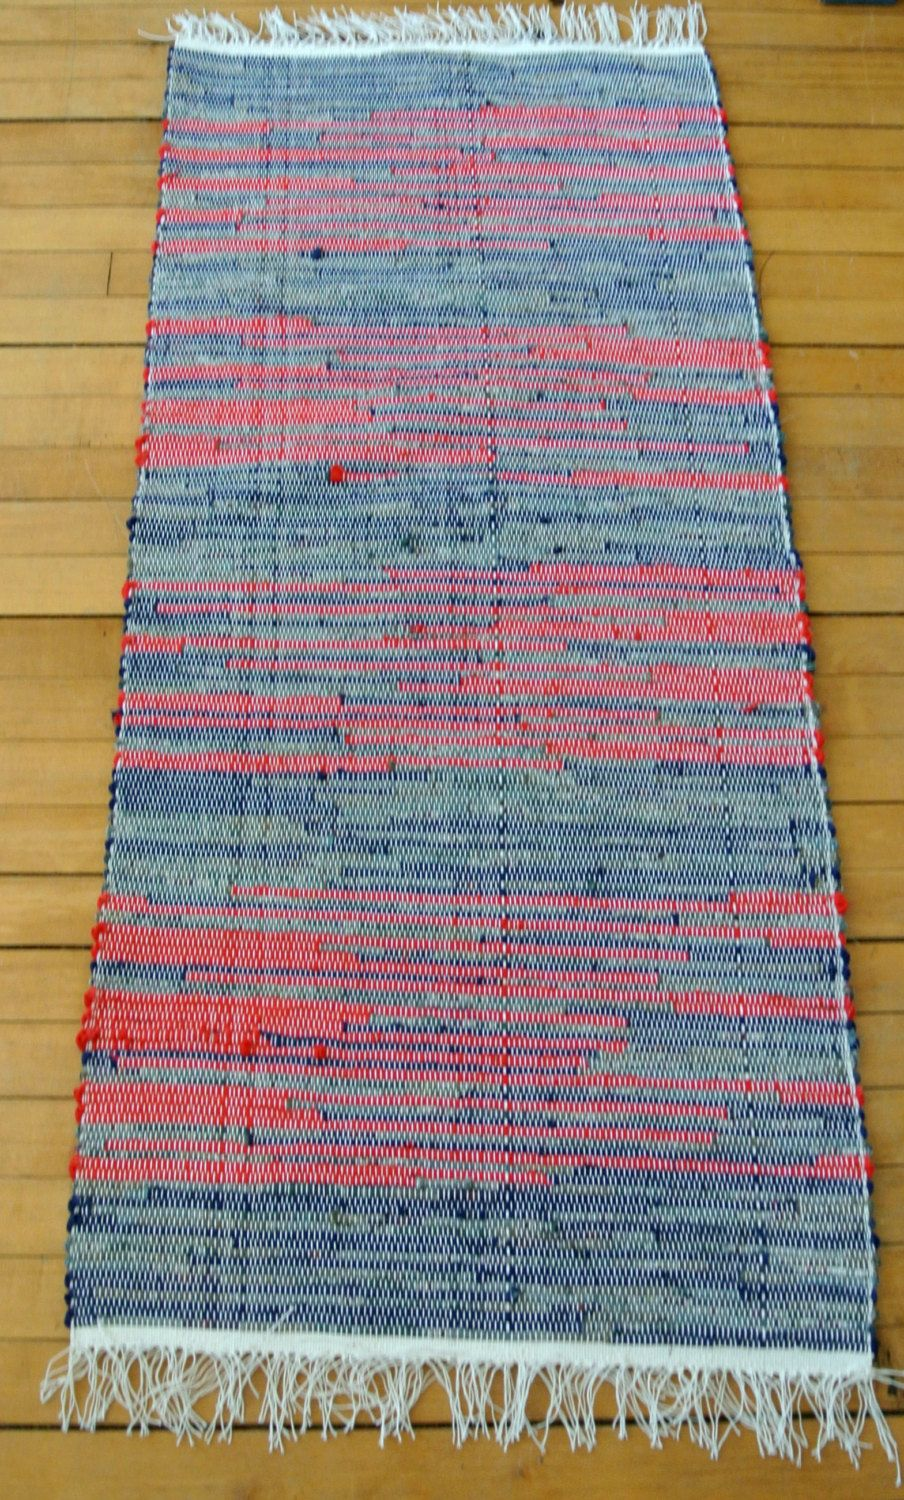 Hand Woven Rag Rug Union Loom Cotton Blend Large Cottage Chic Primitive By Longtallsallys On Etsy